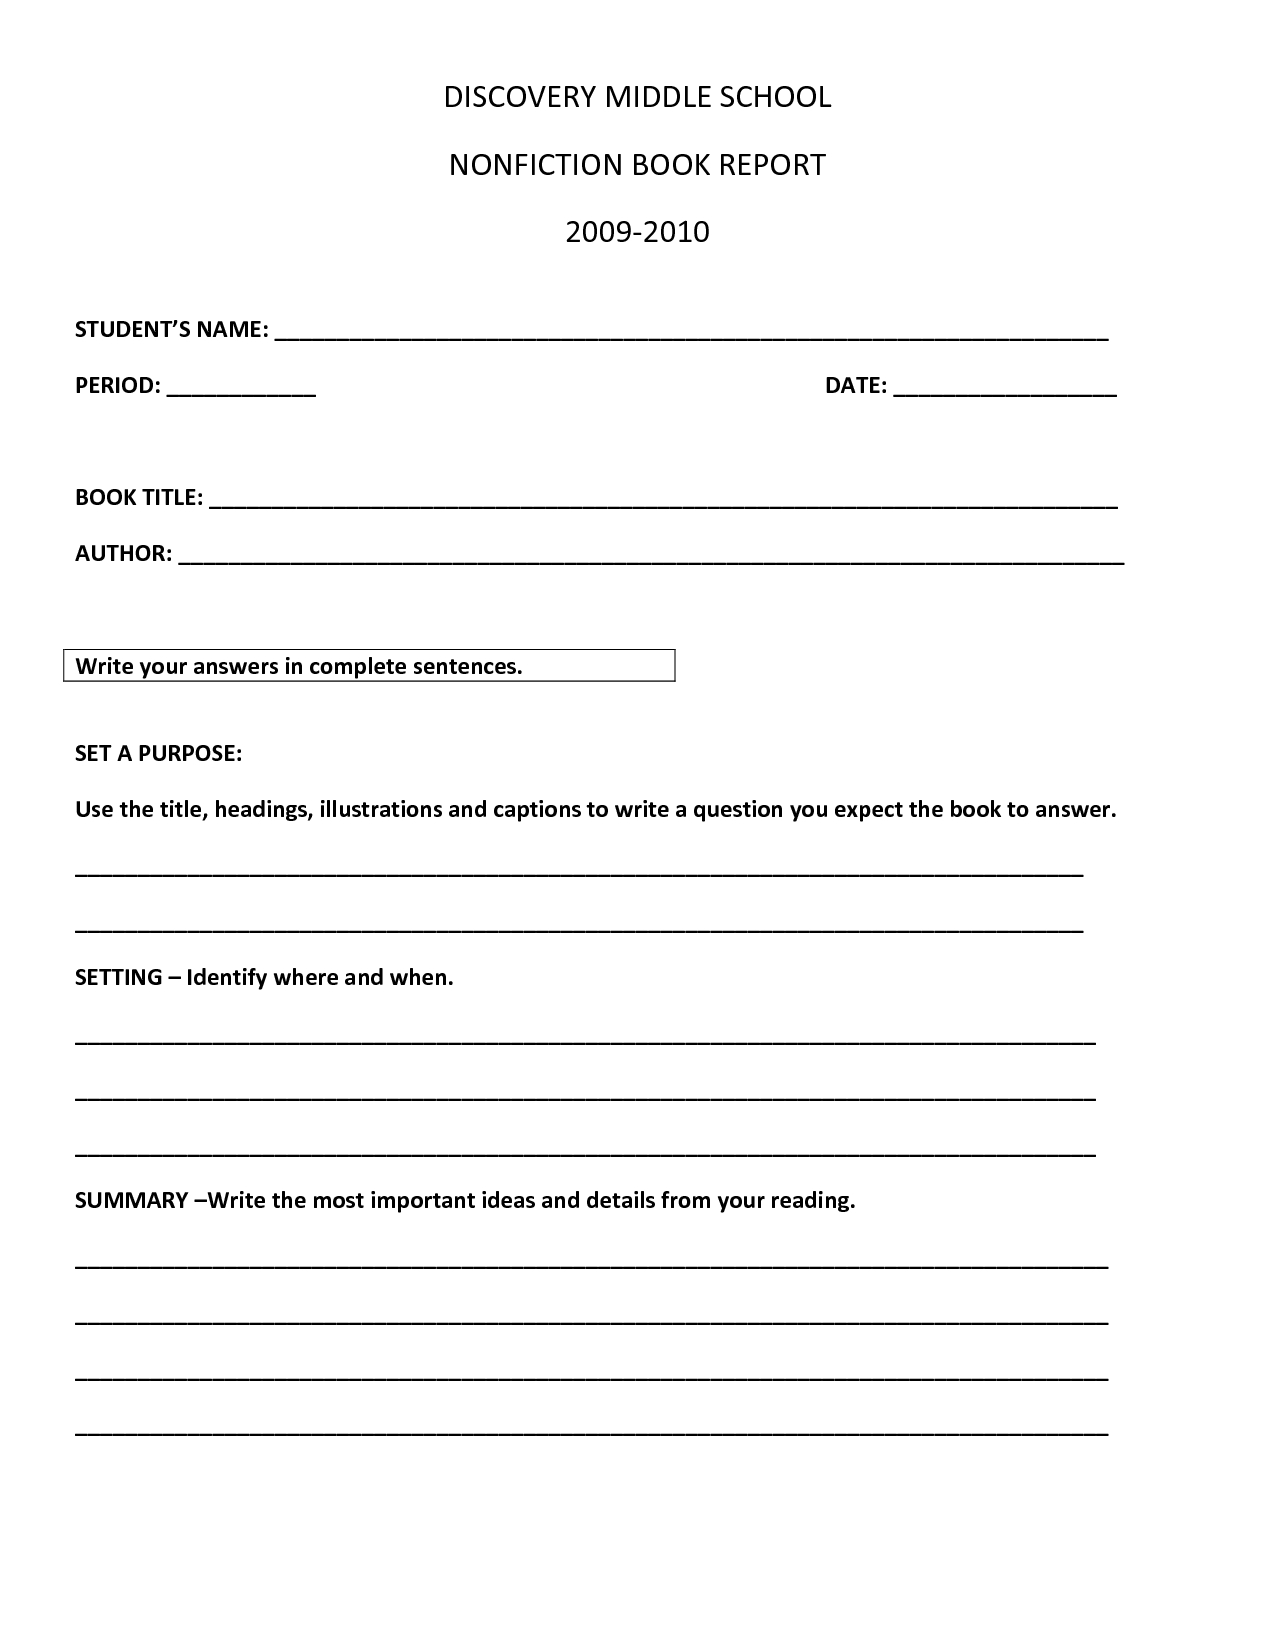 Non Fiction Book Report Template Middle School | How To Throughout Middle School Book Report Template